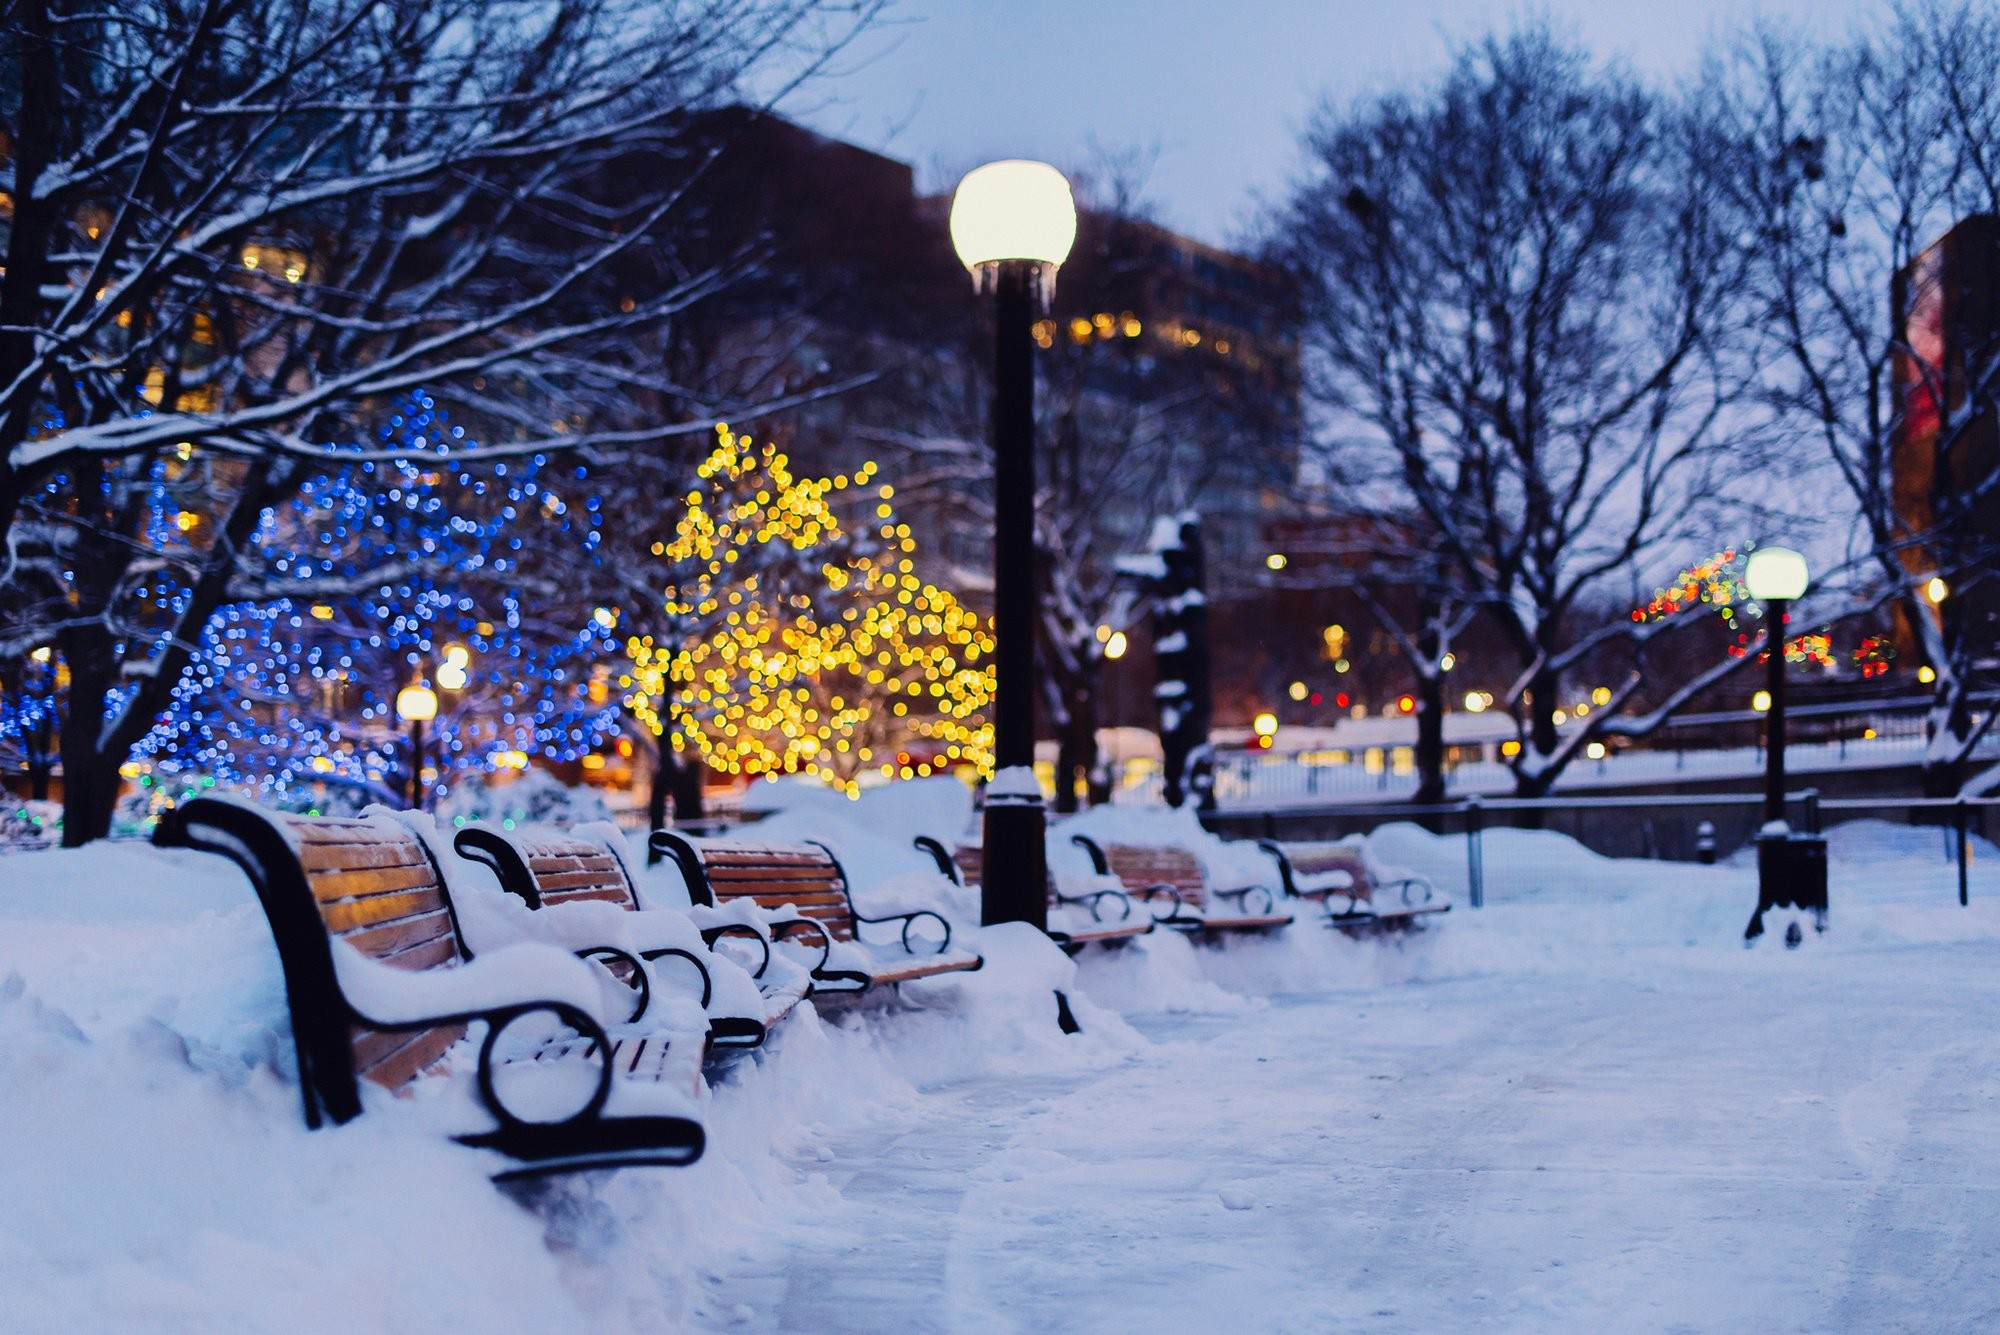 winter shops city night snow wallpaper background